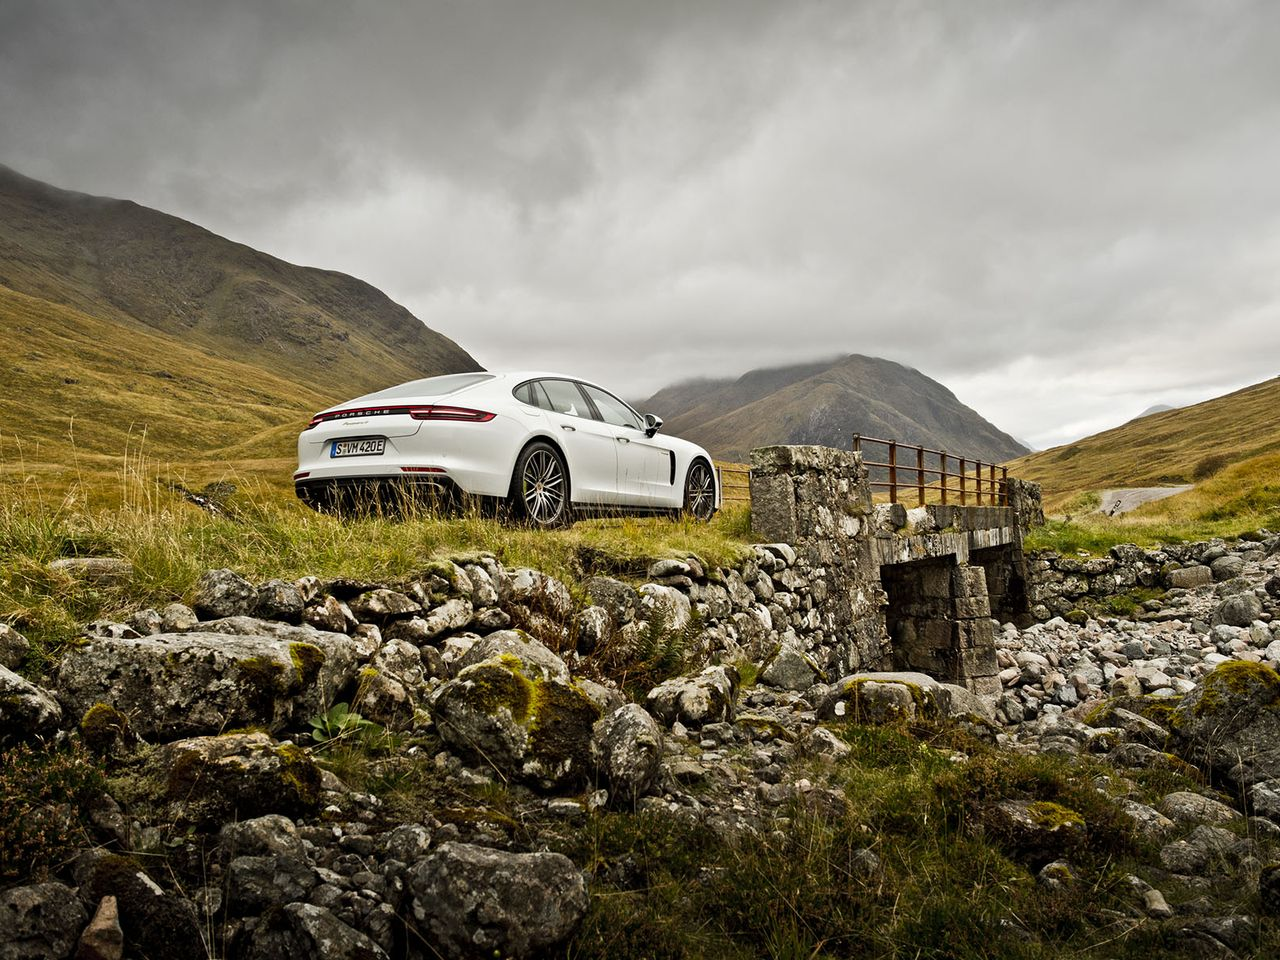 Driving in Glencoe, a film location for the James Bond movie Skyfall.